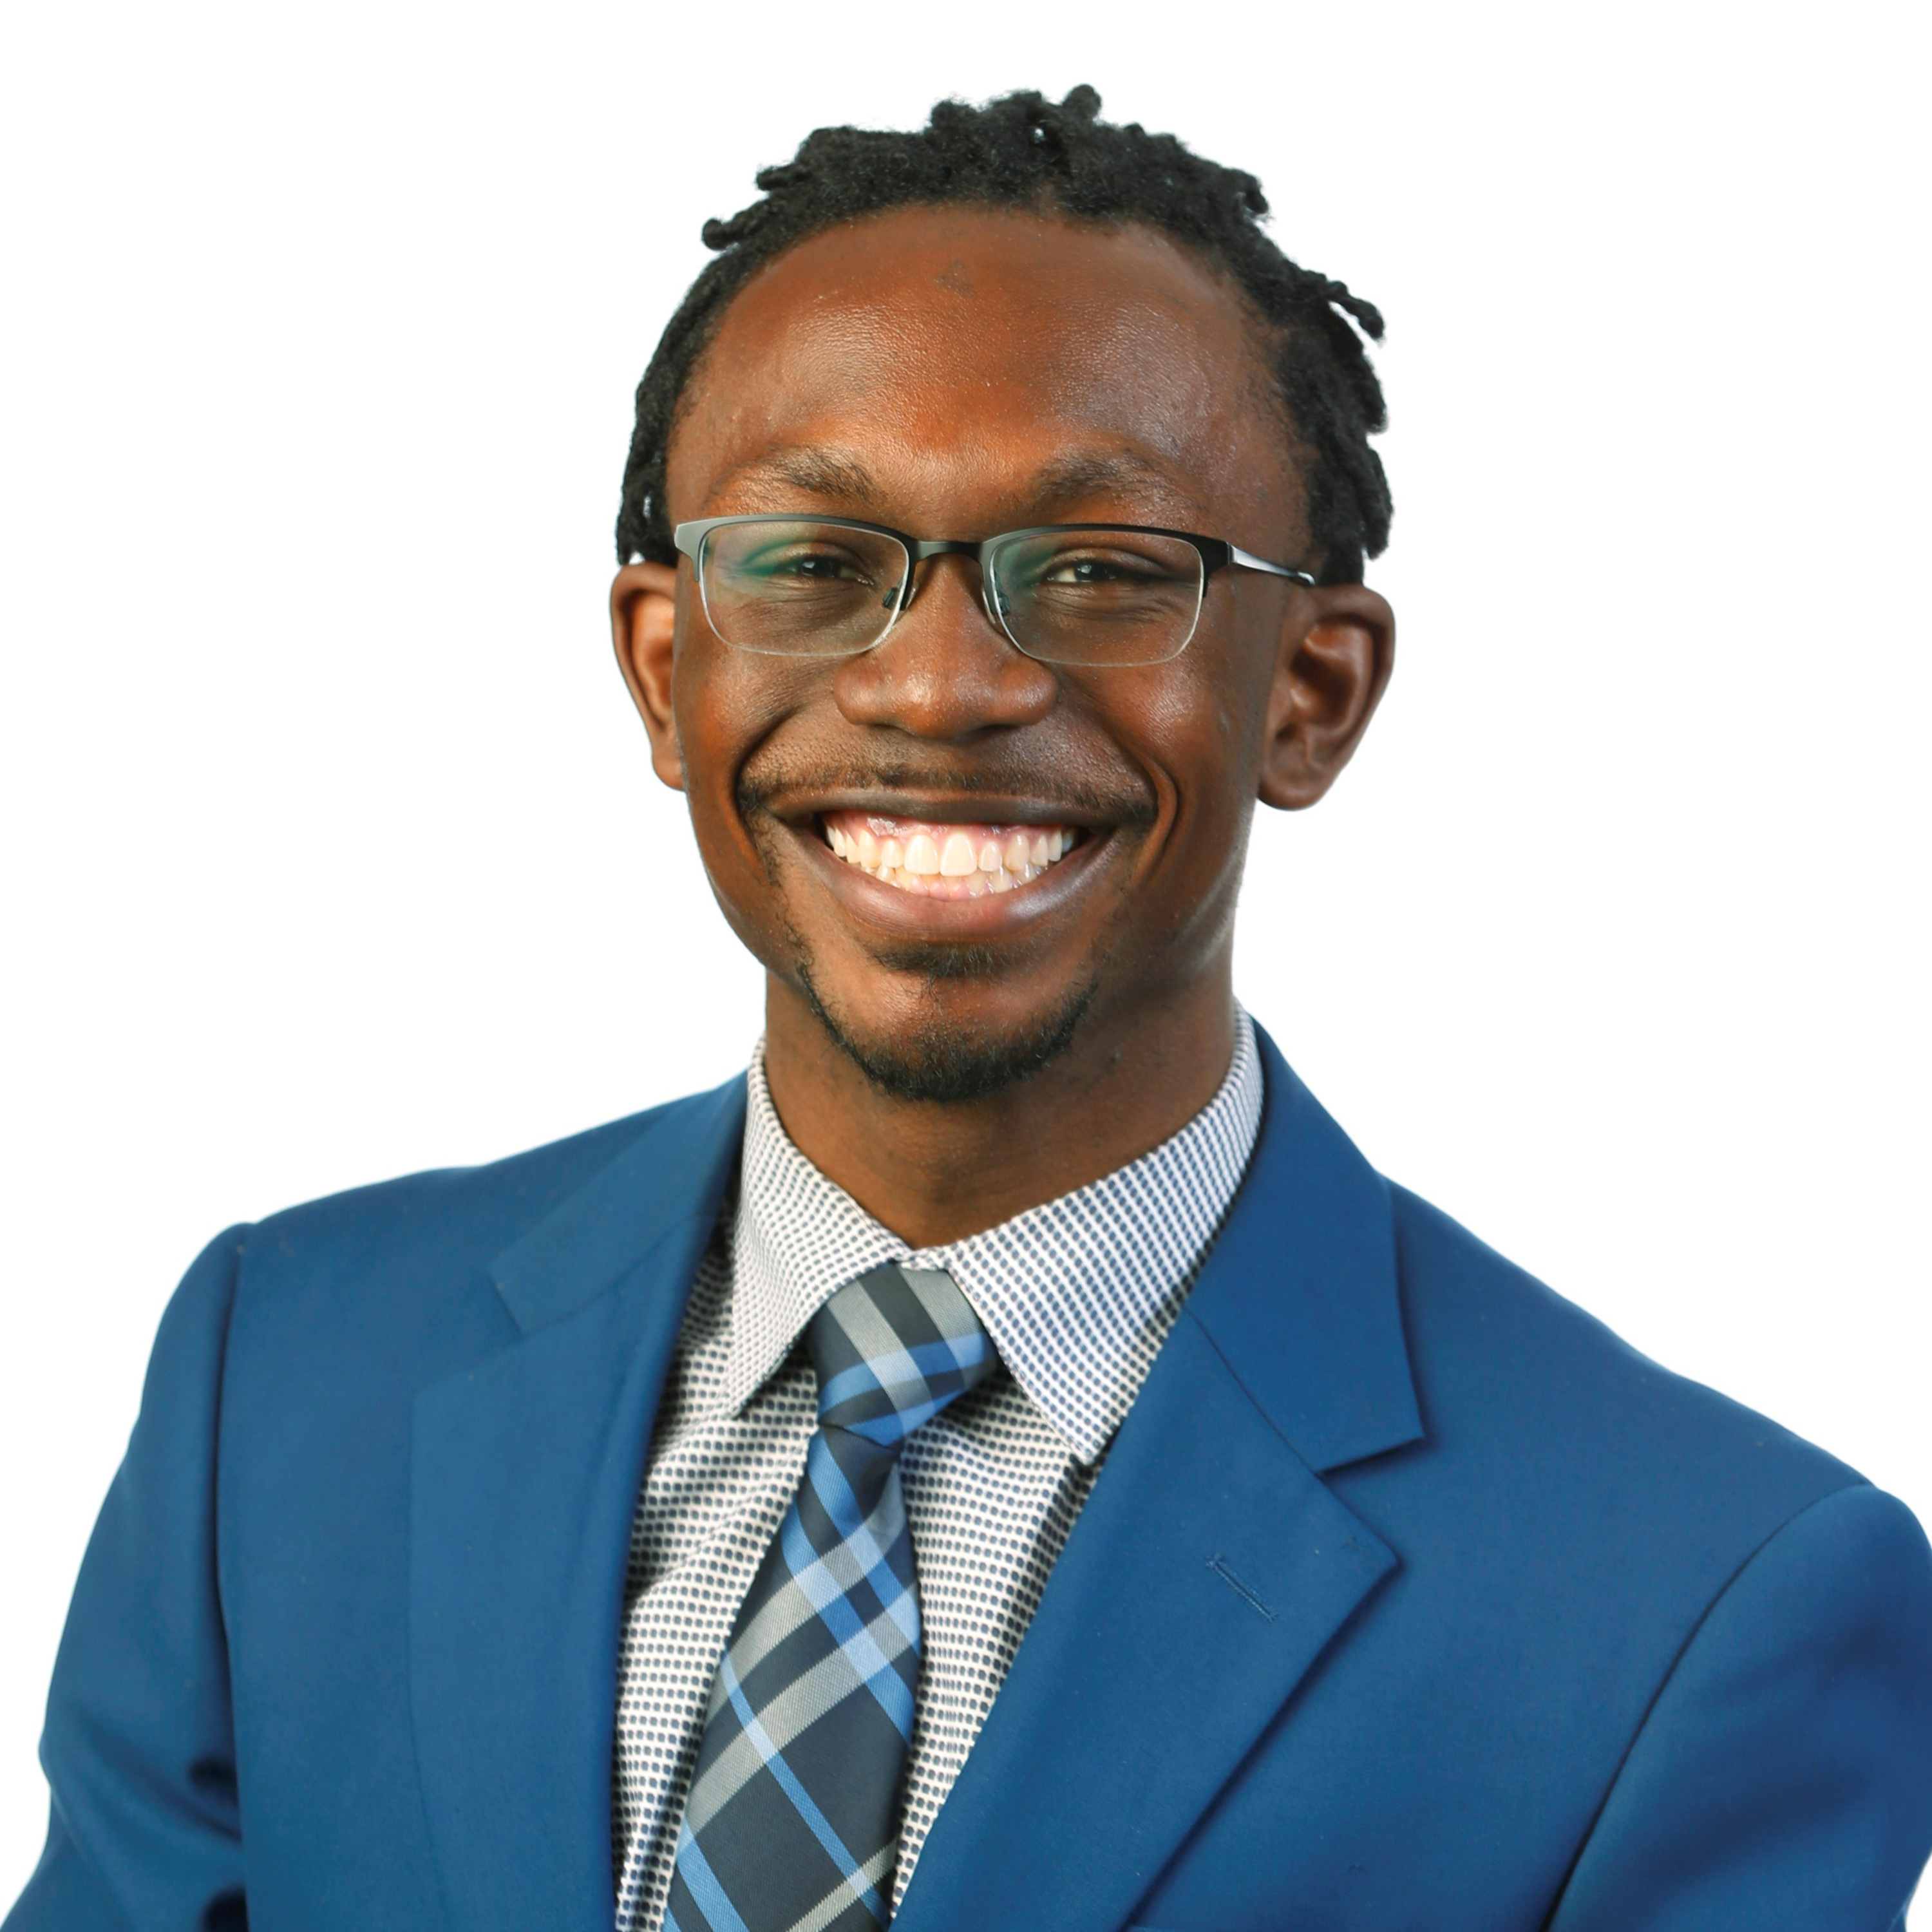 Mental Health Download: Exploring Mental Illness, Suicide, Homelessness and Incarceration - Kyle Ofori: Why the Census Matters